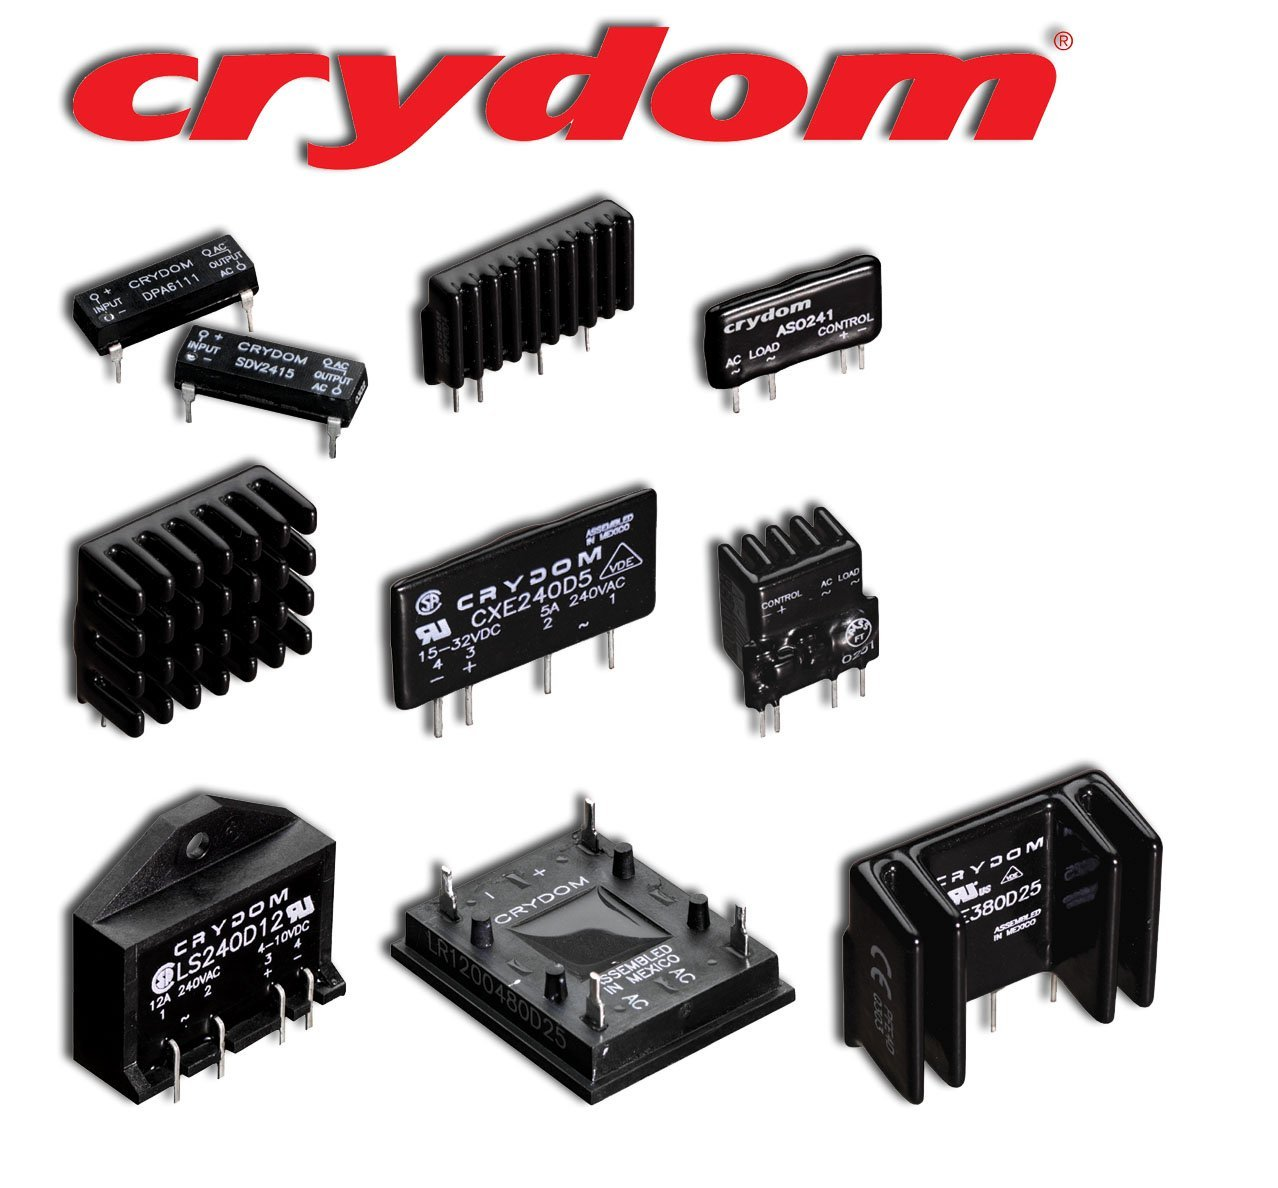 Crydom Pcb Mount Solid State Relays Uk Electrical Distributors E Relay Finder Range1 These Compact